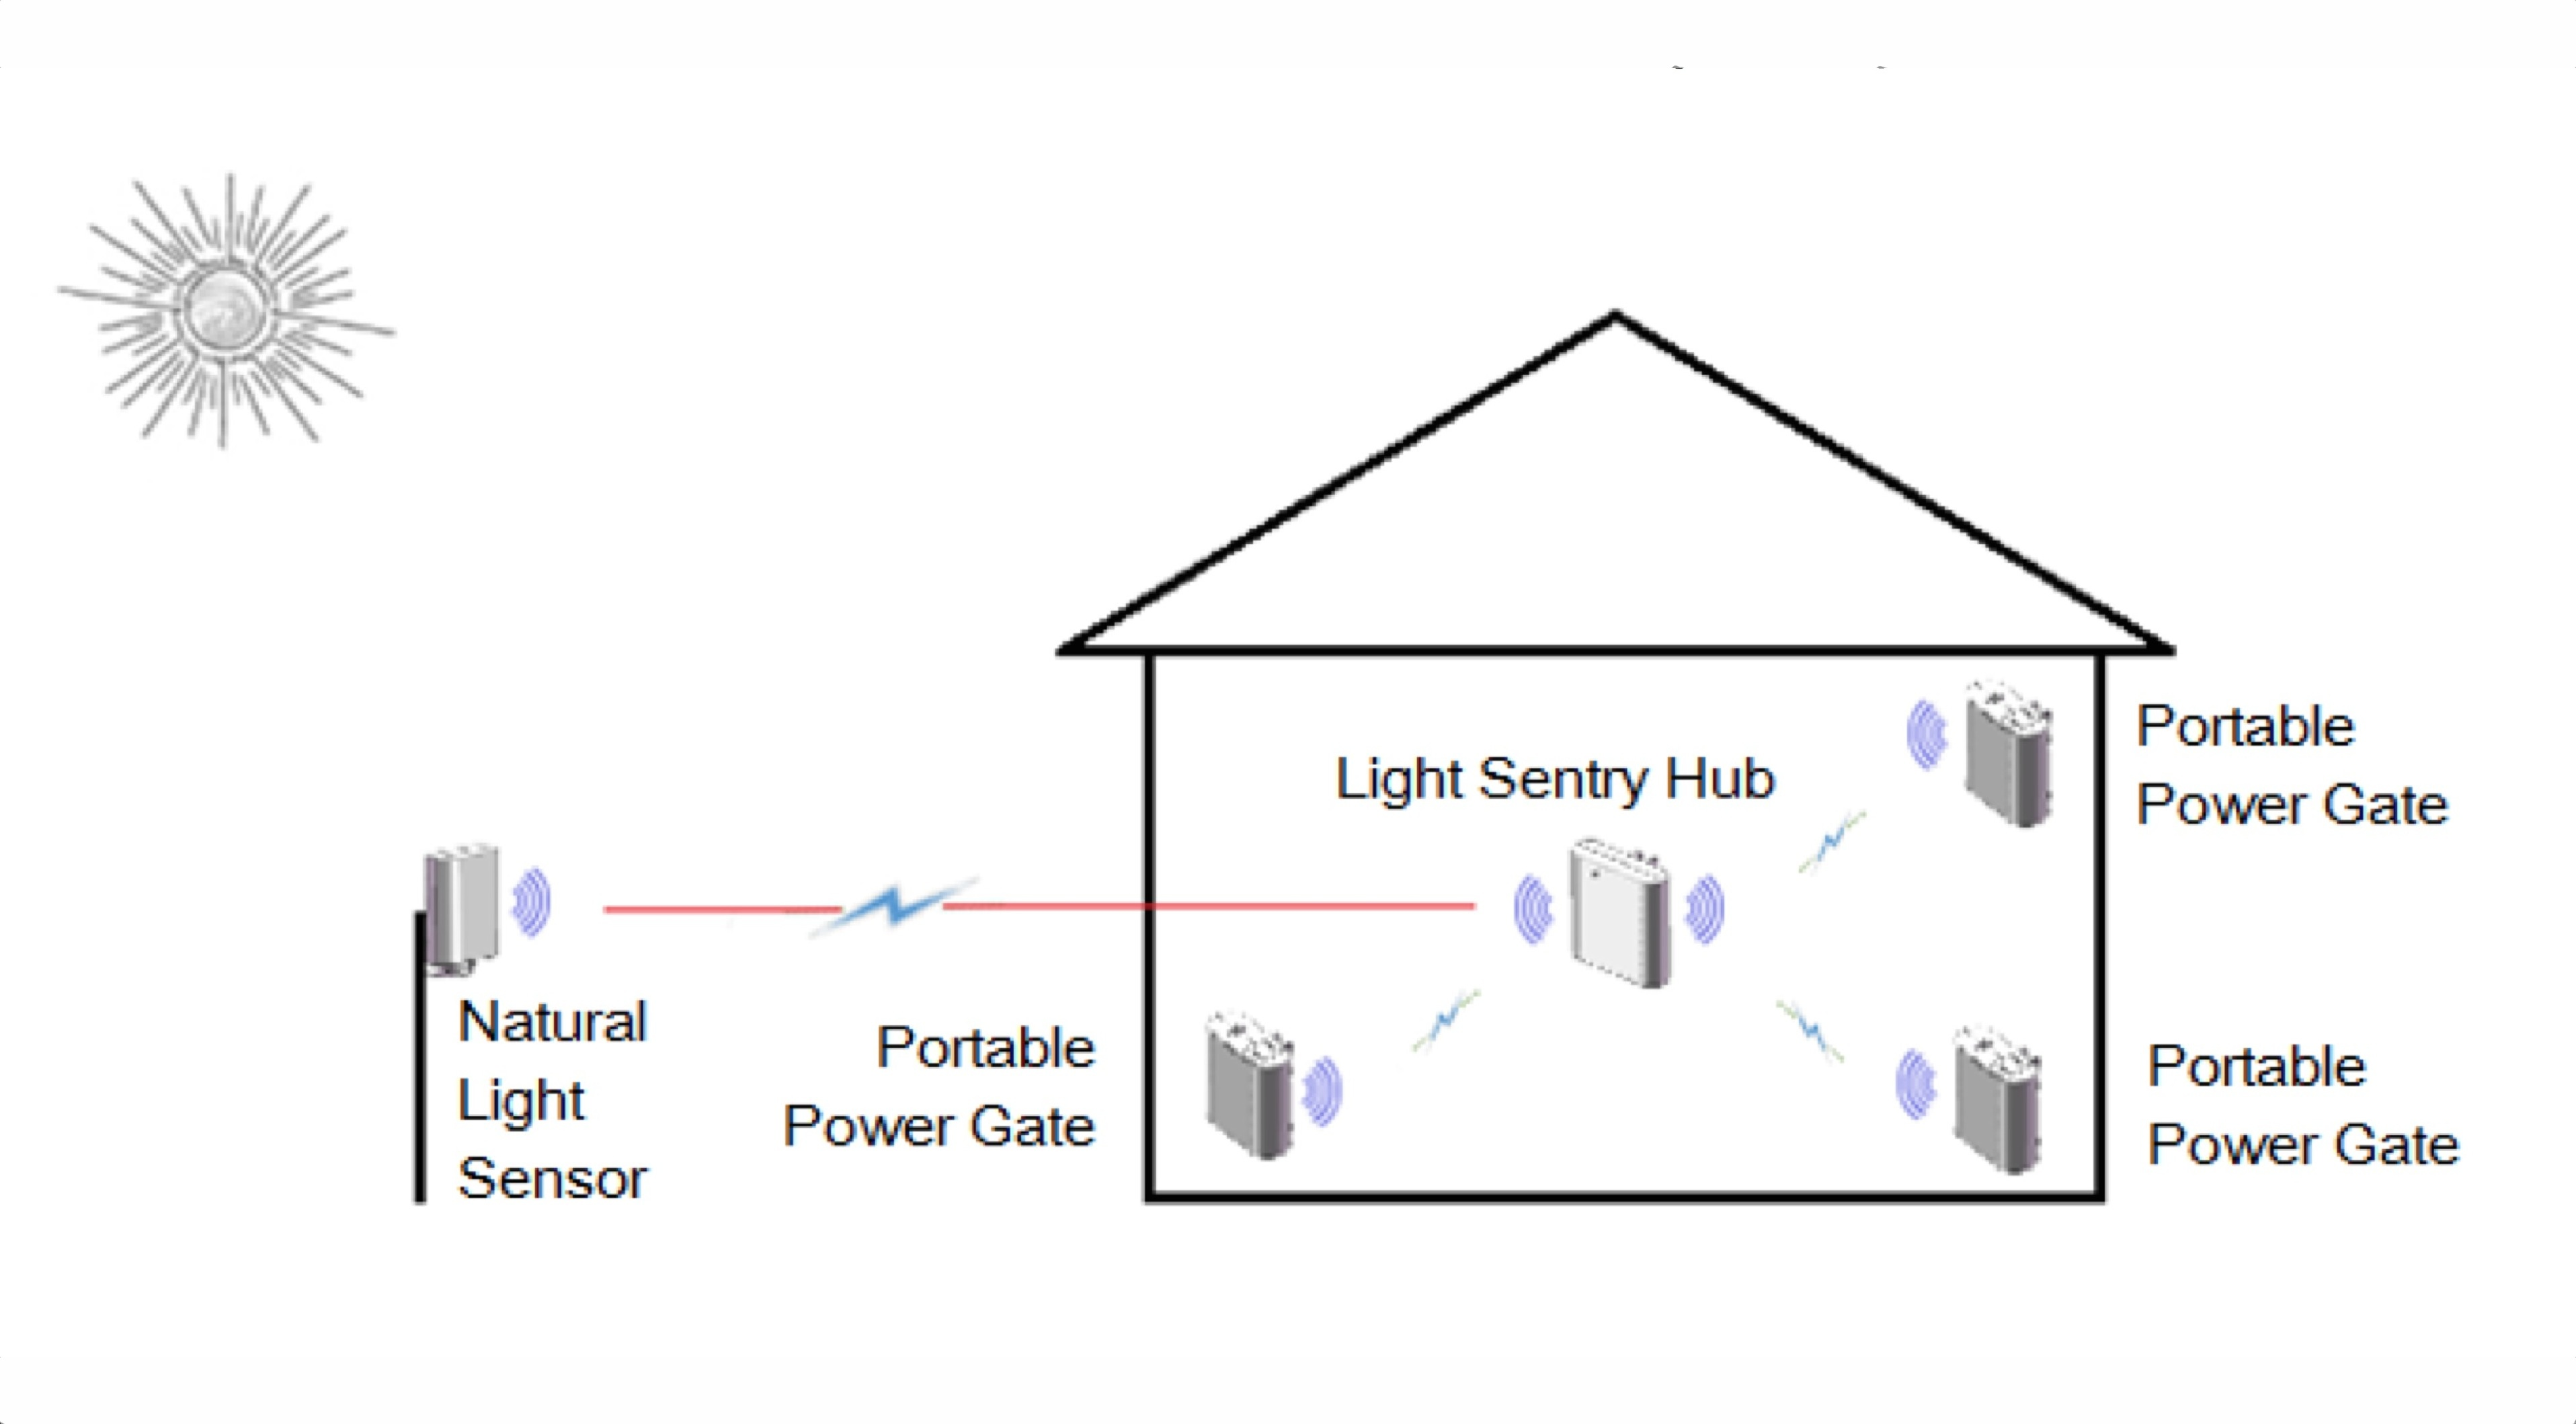 Light Sentry System Automates Lighting Using Available